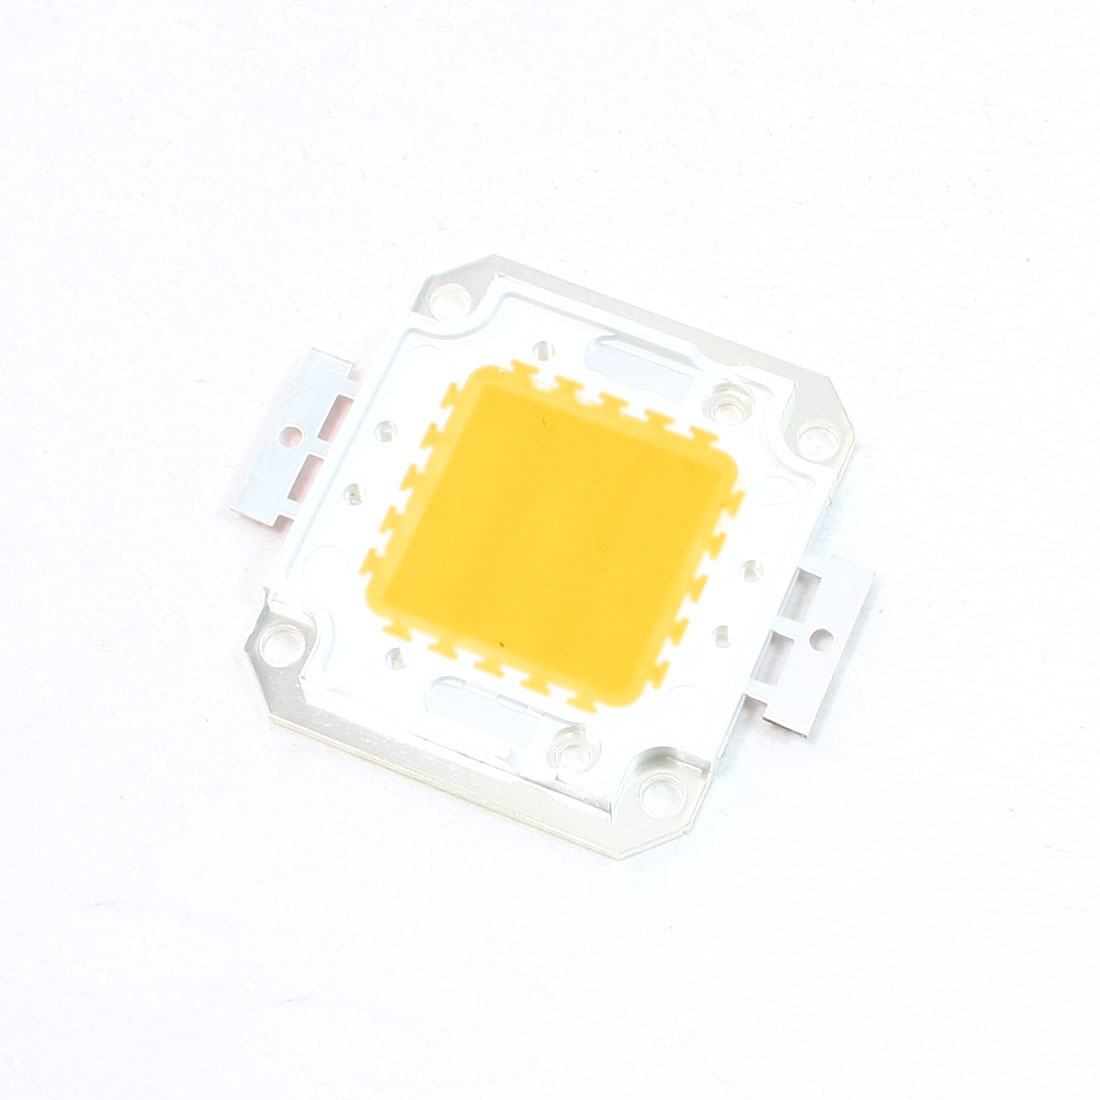 1500-2500LM 2850-3150K 20W High Power Warm White 2x10 IC LED Lamp Blub Beads